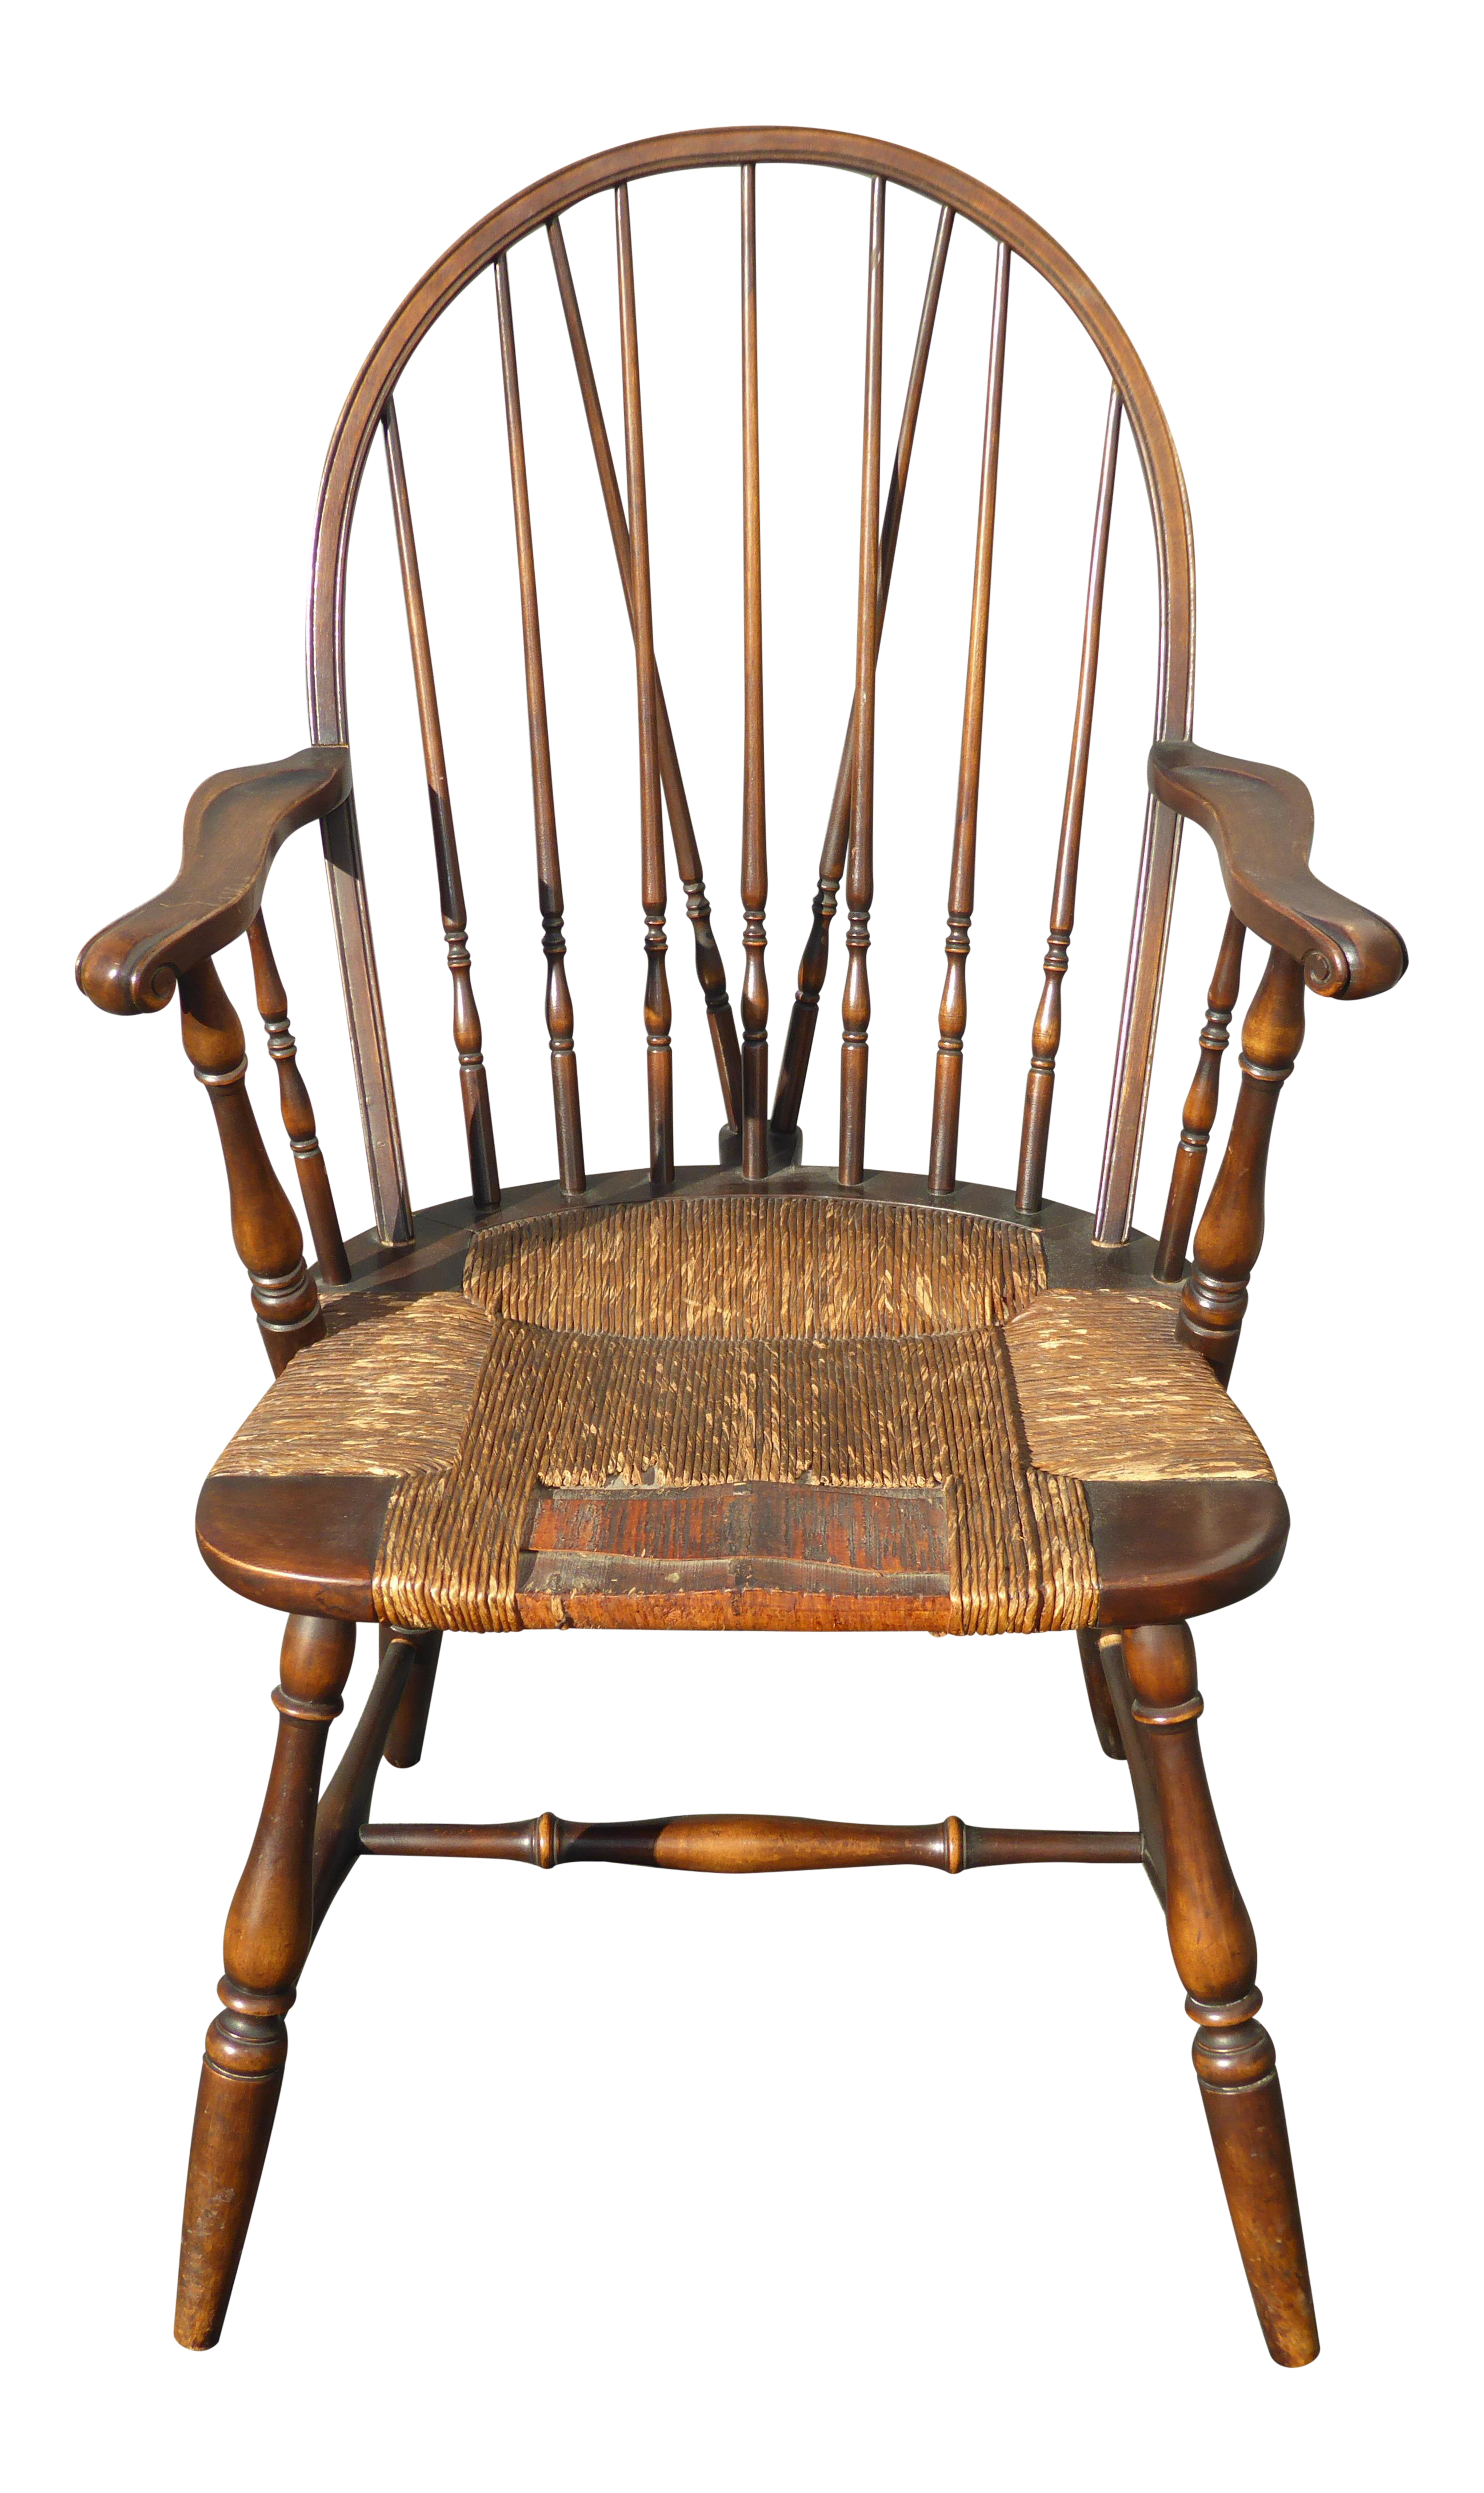 Solid Wood Rush Seat Rustic Windsor Arm Chair | Chairish